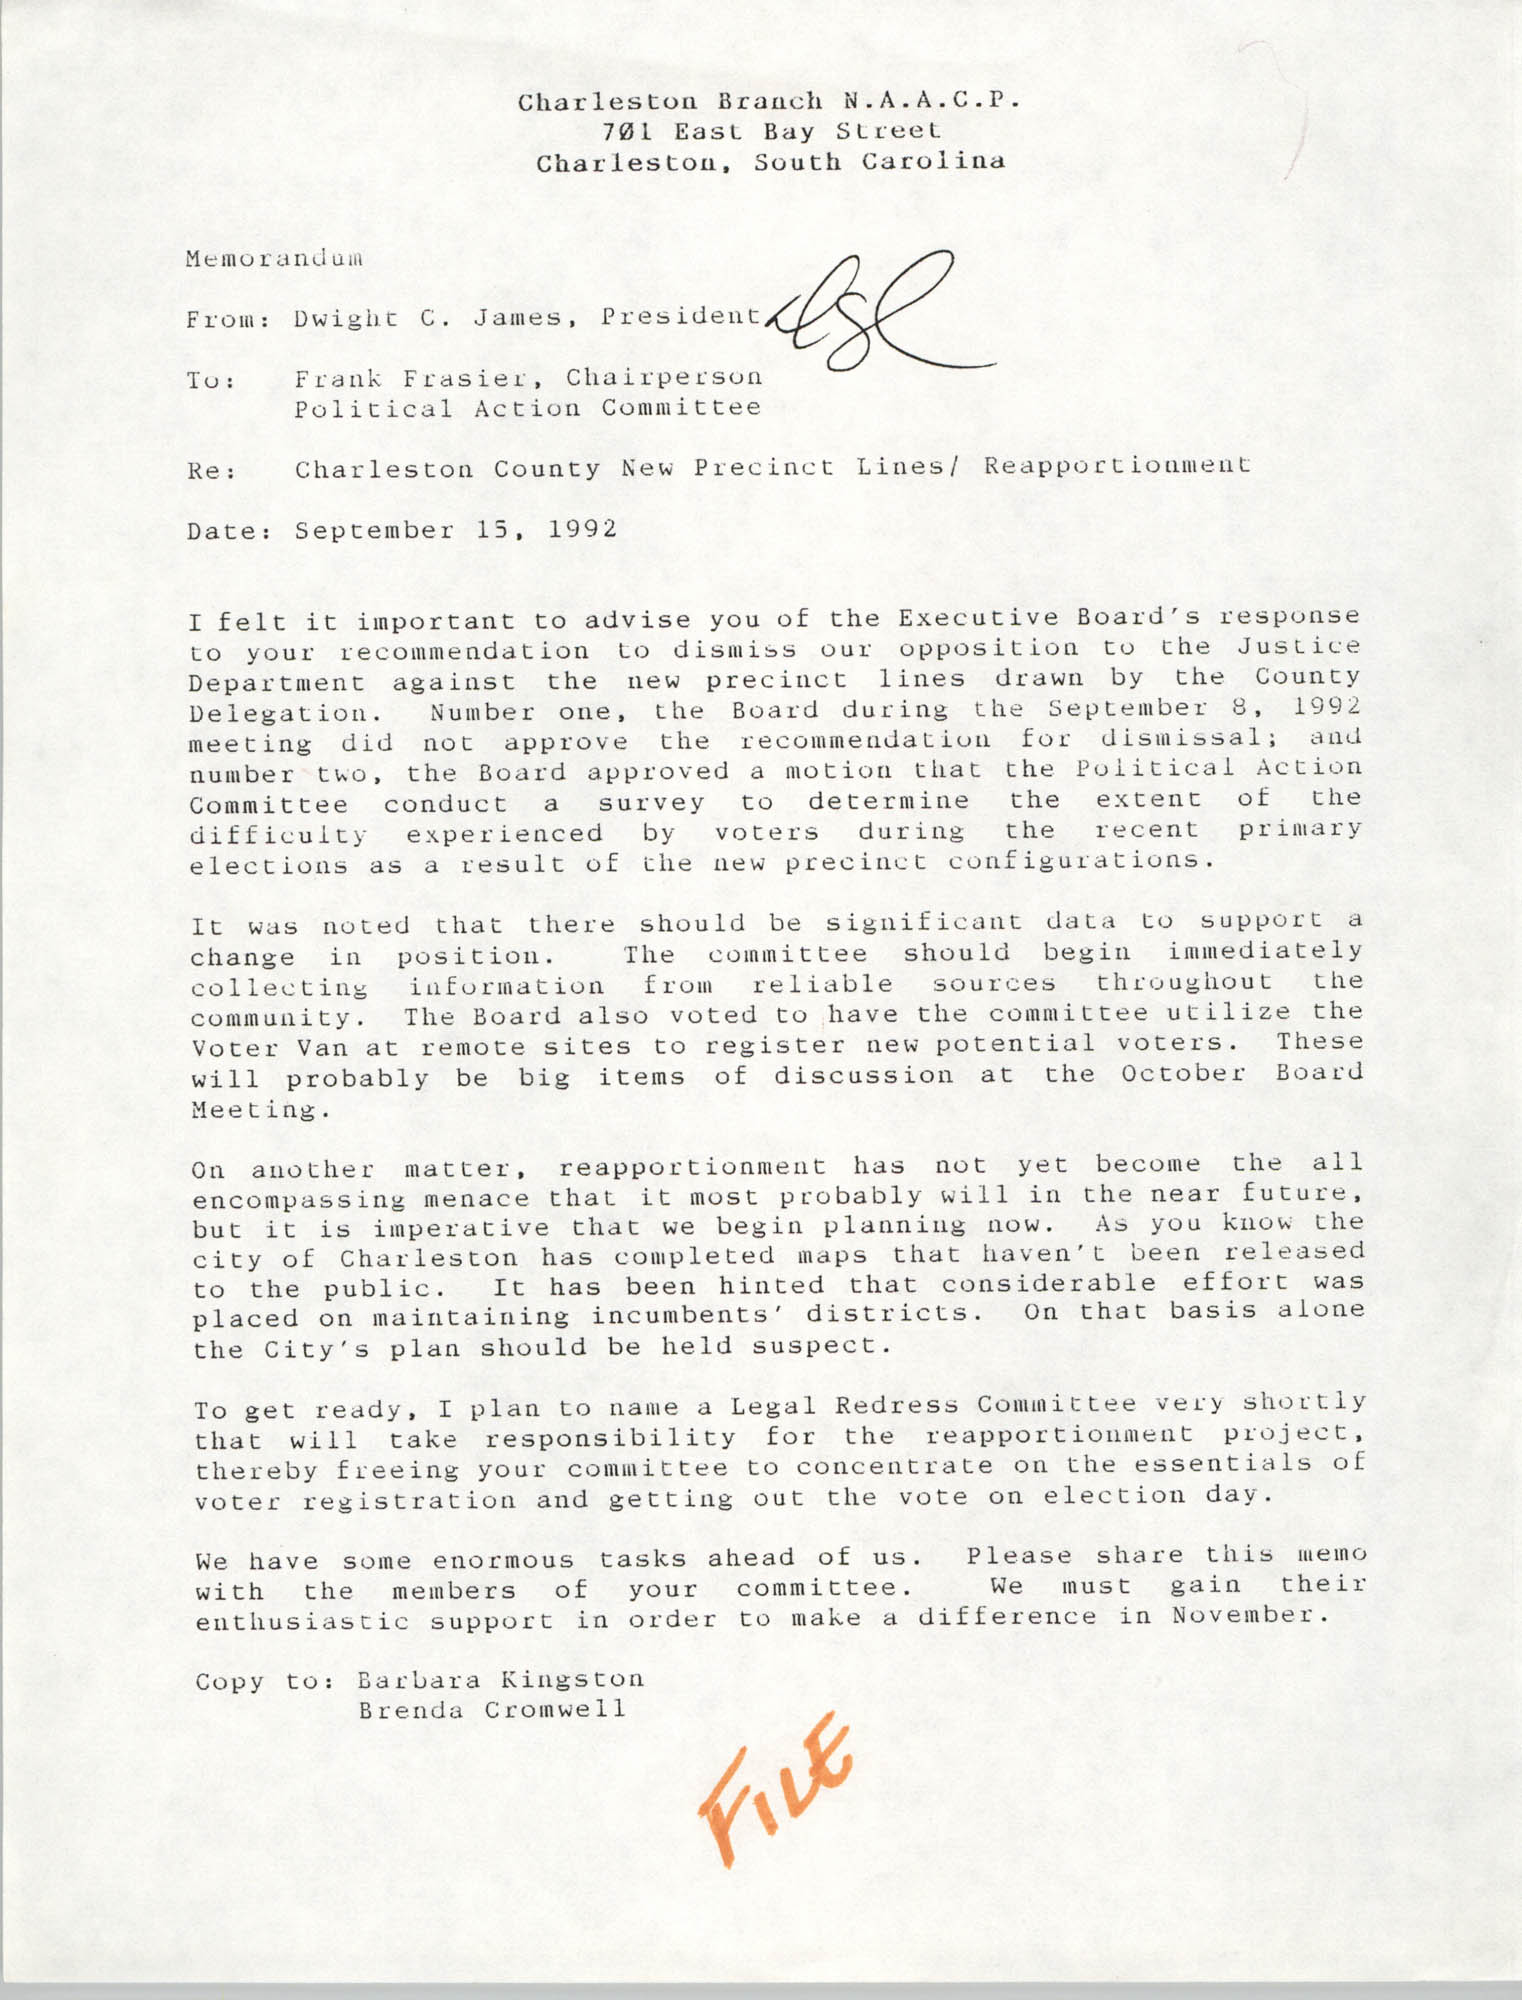 Memorandum, Dwight C. James, September 15, 1992